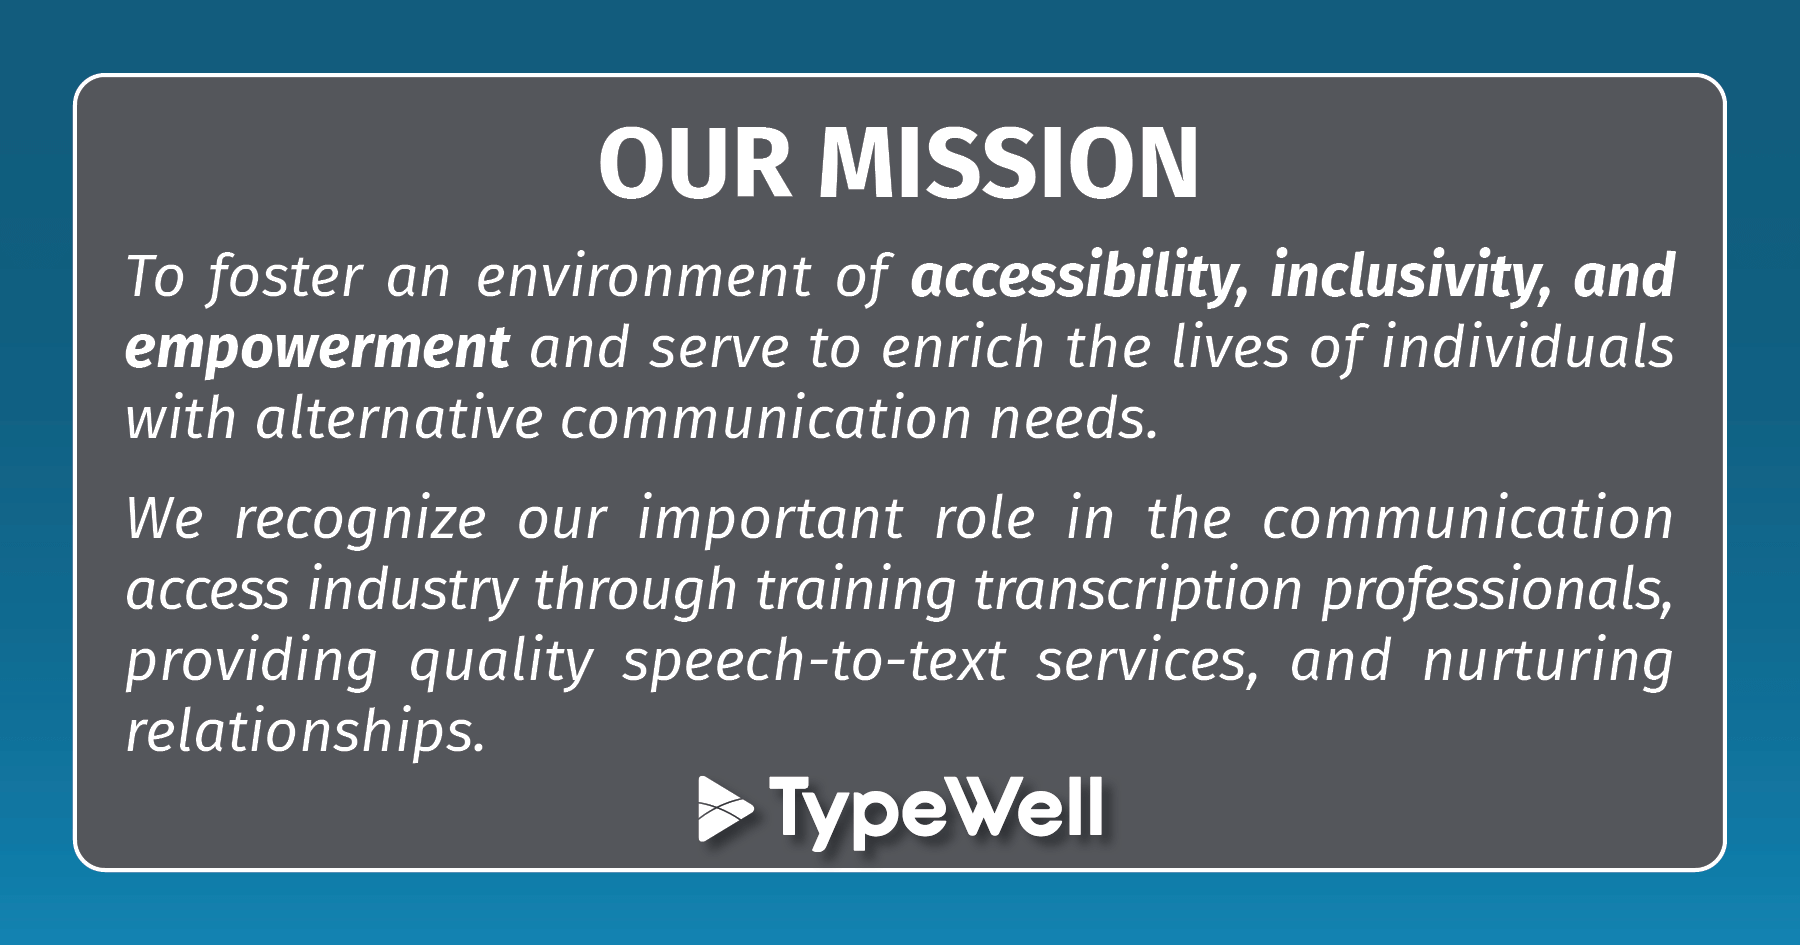 OUR MISSION: To foster an environment of accessibility, inclusivity, and empowerment and serve to enrich the lives of individuals with alternative communication needs. We recognize our important role in the communication access industry through training transcription professionals, providing quality speech-to-text services, and nurturing relationships.